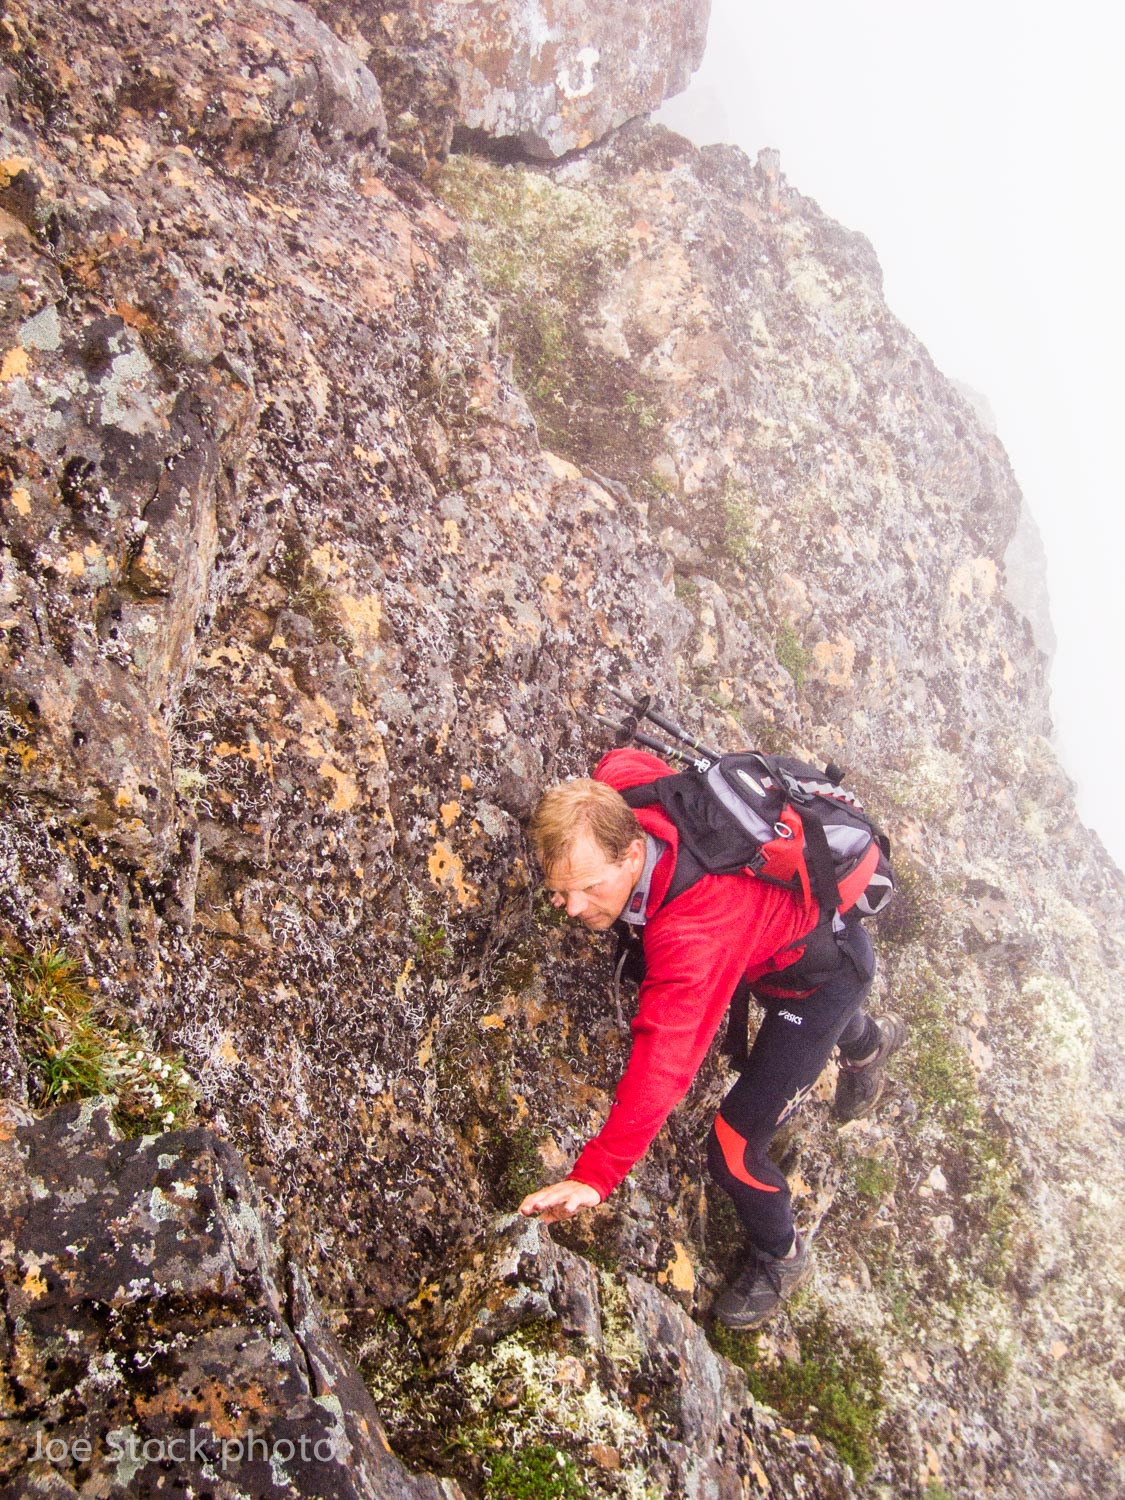 Other portions of the ridge have exposed scrambling. A difficulty of the linkup is learning if each section of the ridge is better traversed or avoided. Fog can help, making exposed portions less fearsome by hiding the abyss for Trond Jensen.